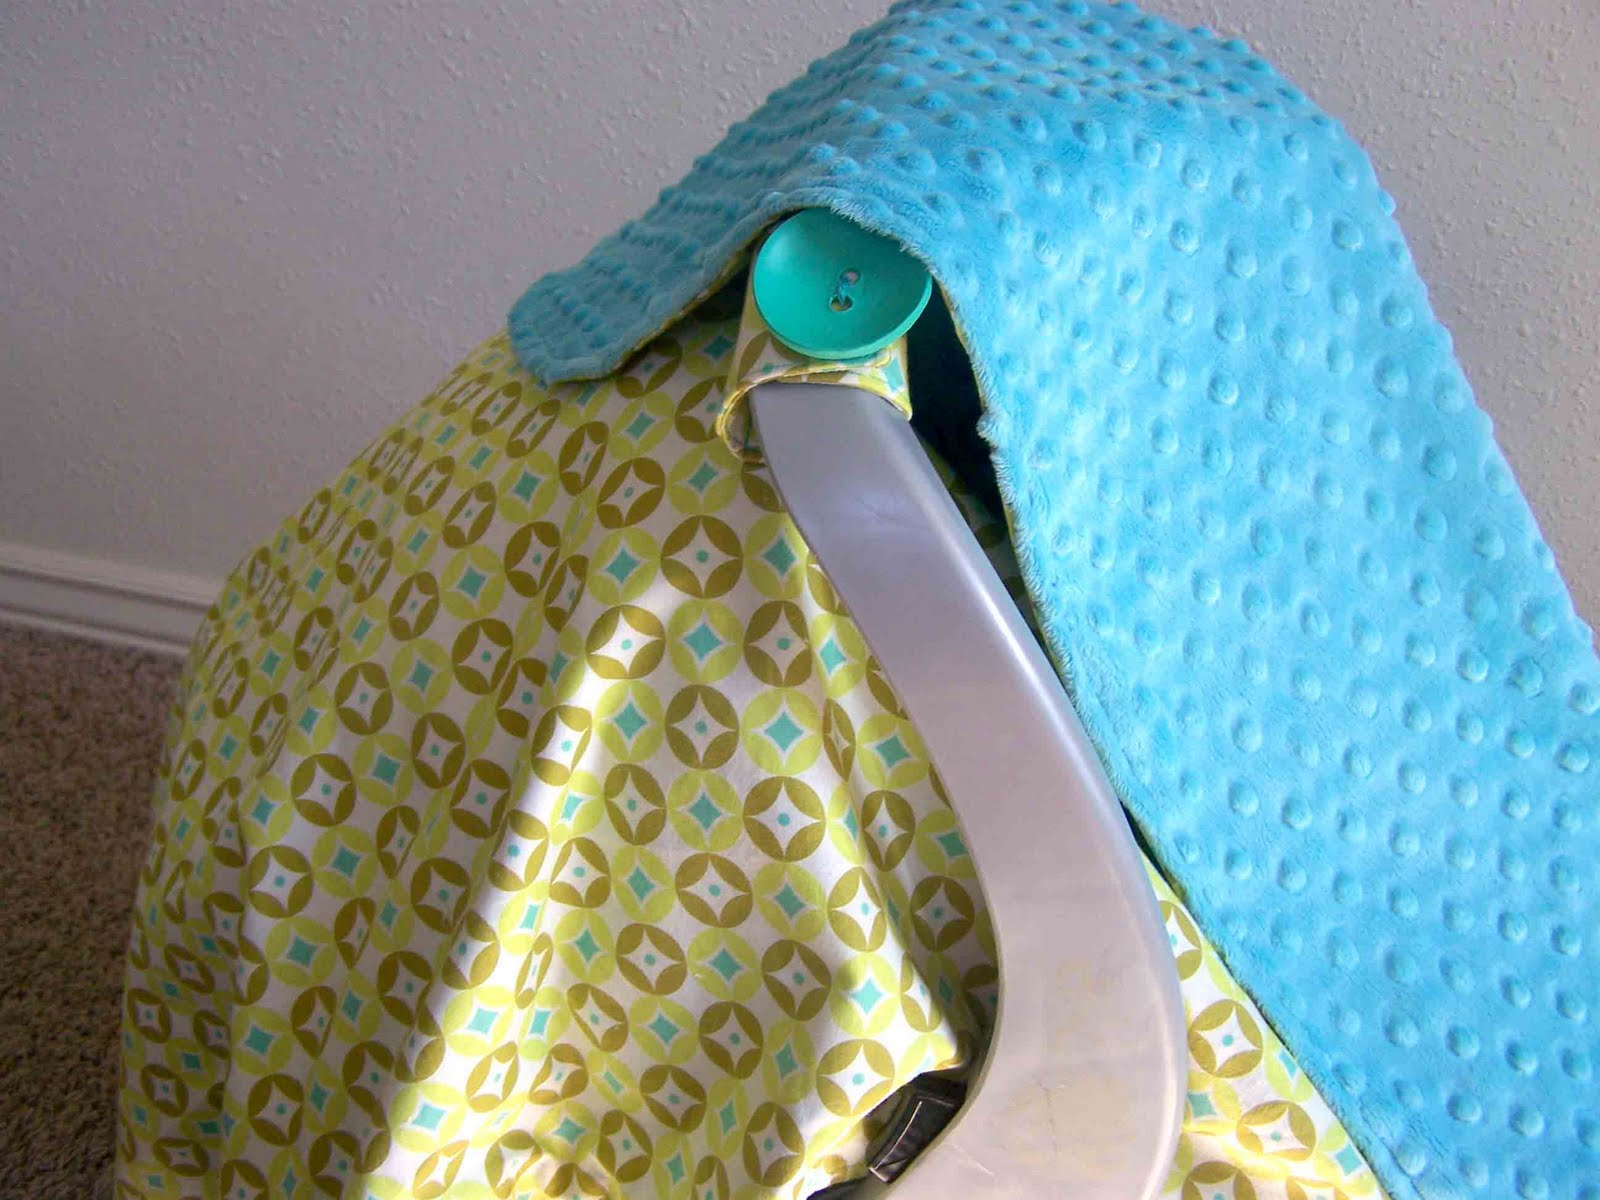 Car seat canopy patterns Baby Gear - Compare Prices, Read Reviews